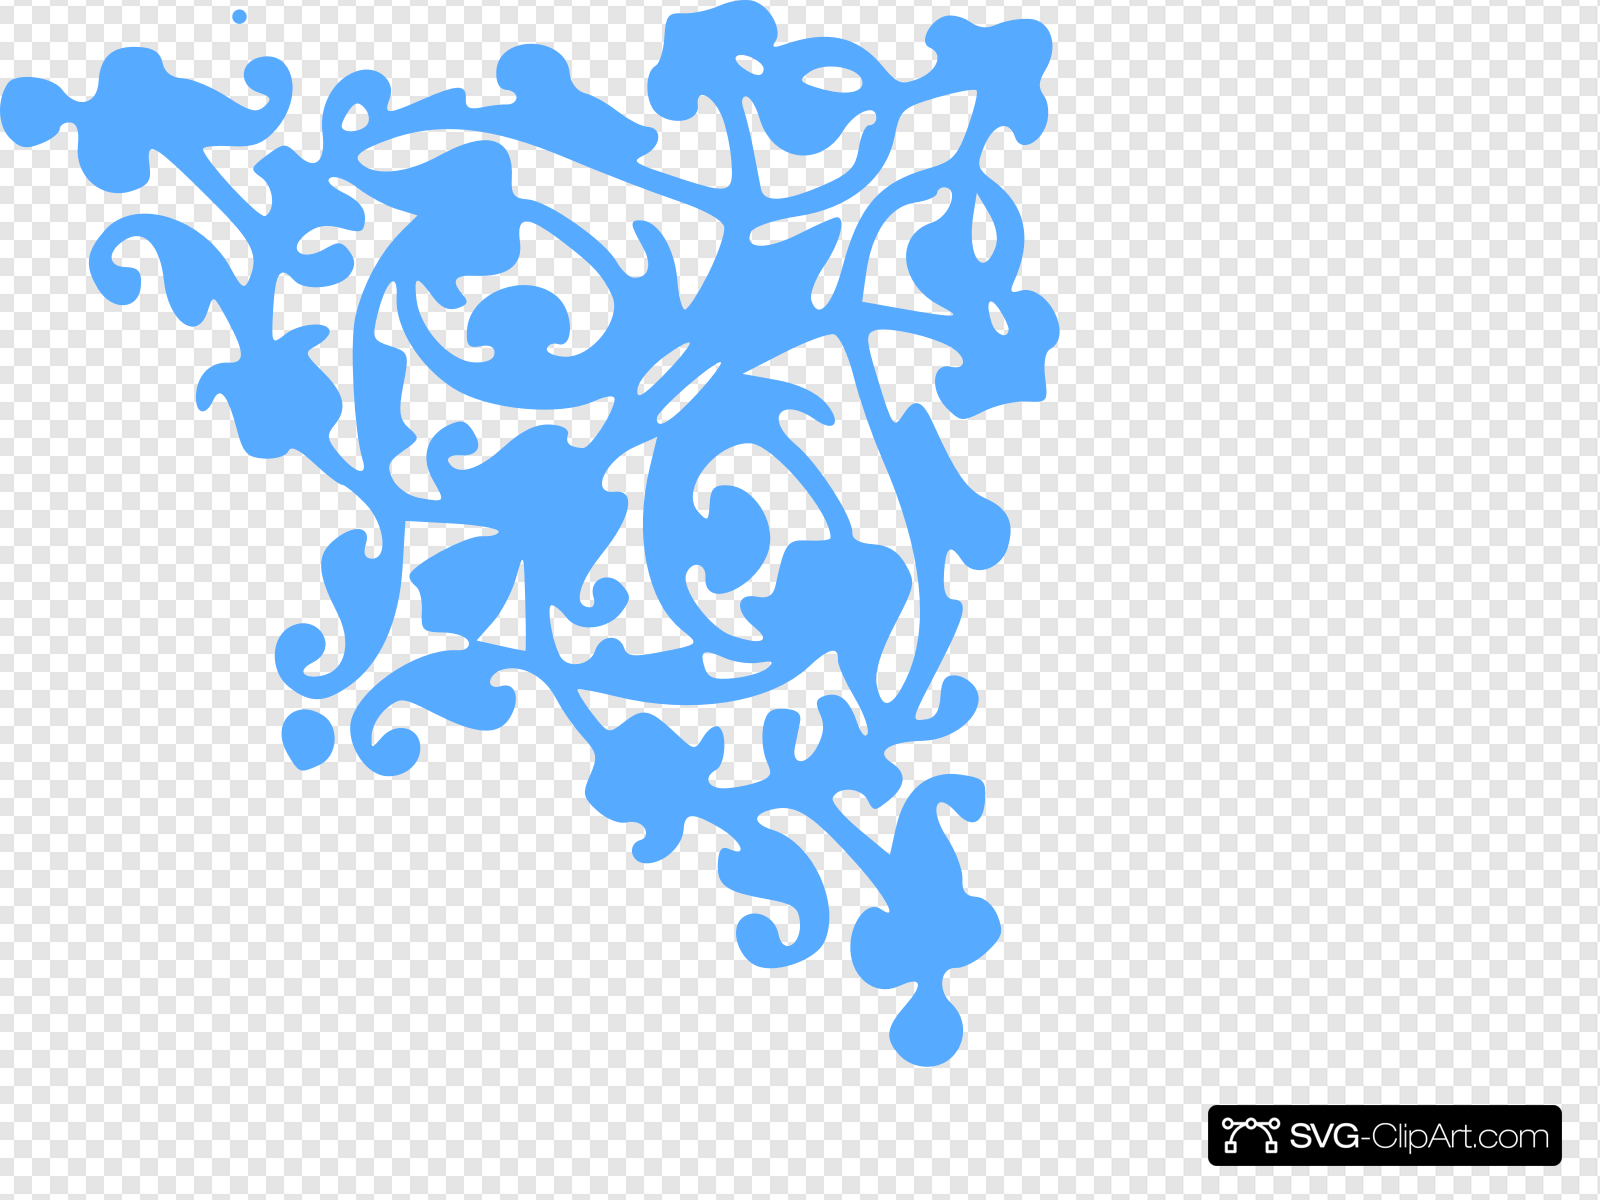 Blue Scroll Clip art, Icon and SVG.